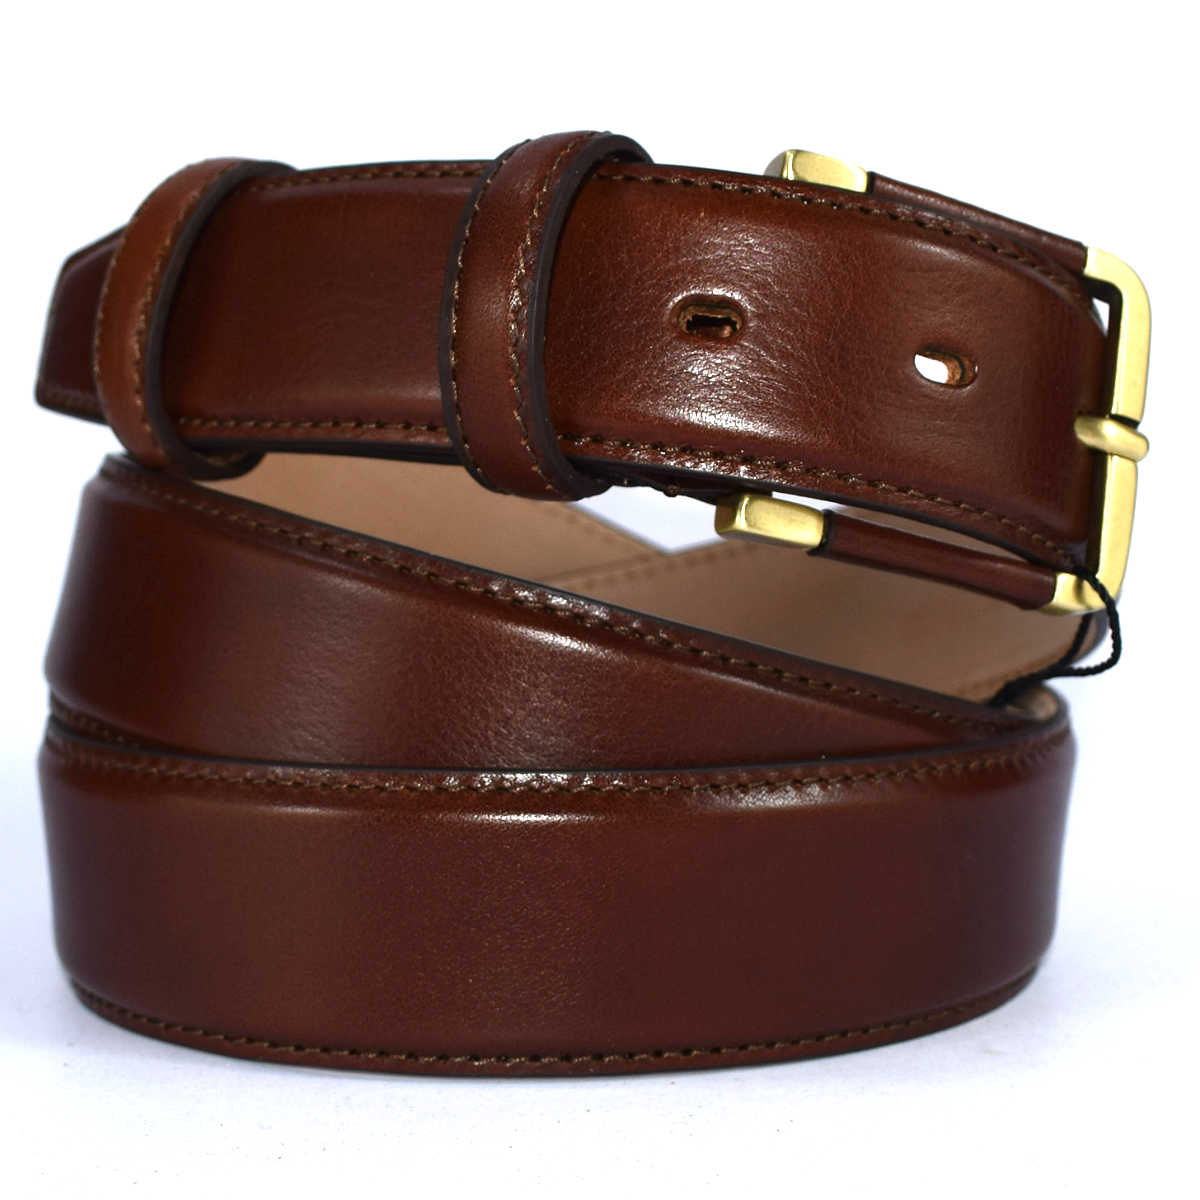 64100135 CLASSIC BELT WITH SEAMS by Bottega Fiorentina